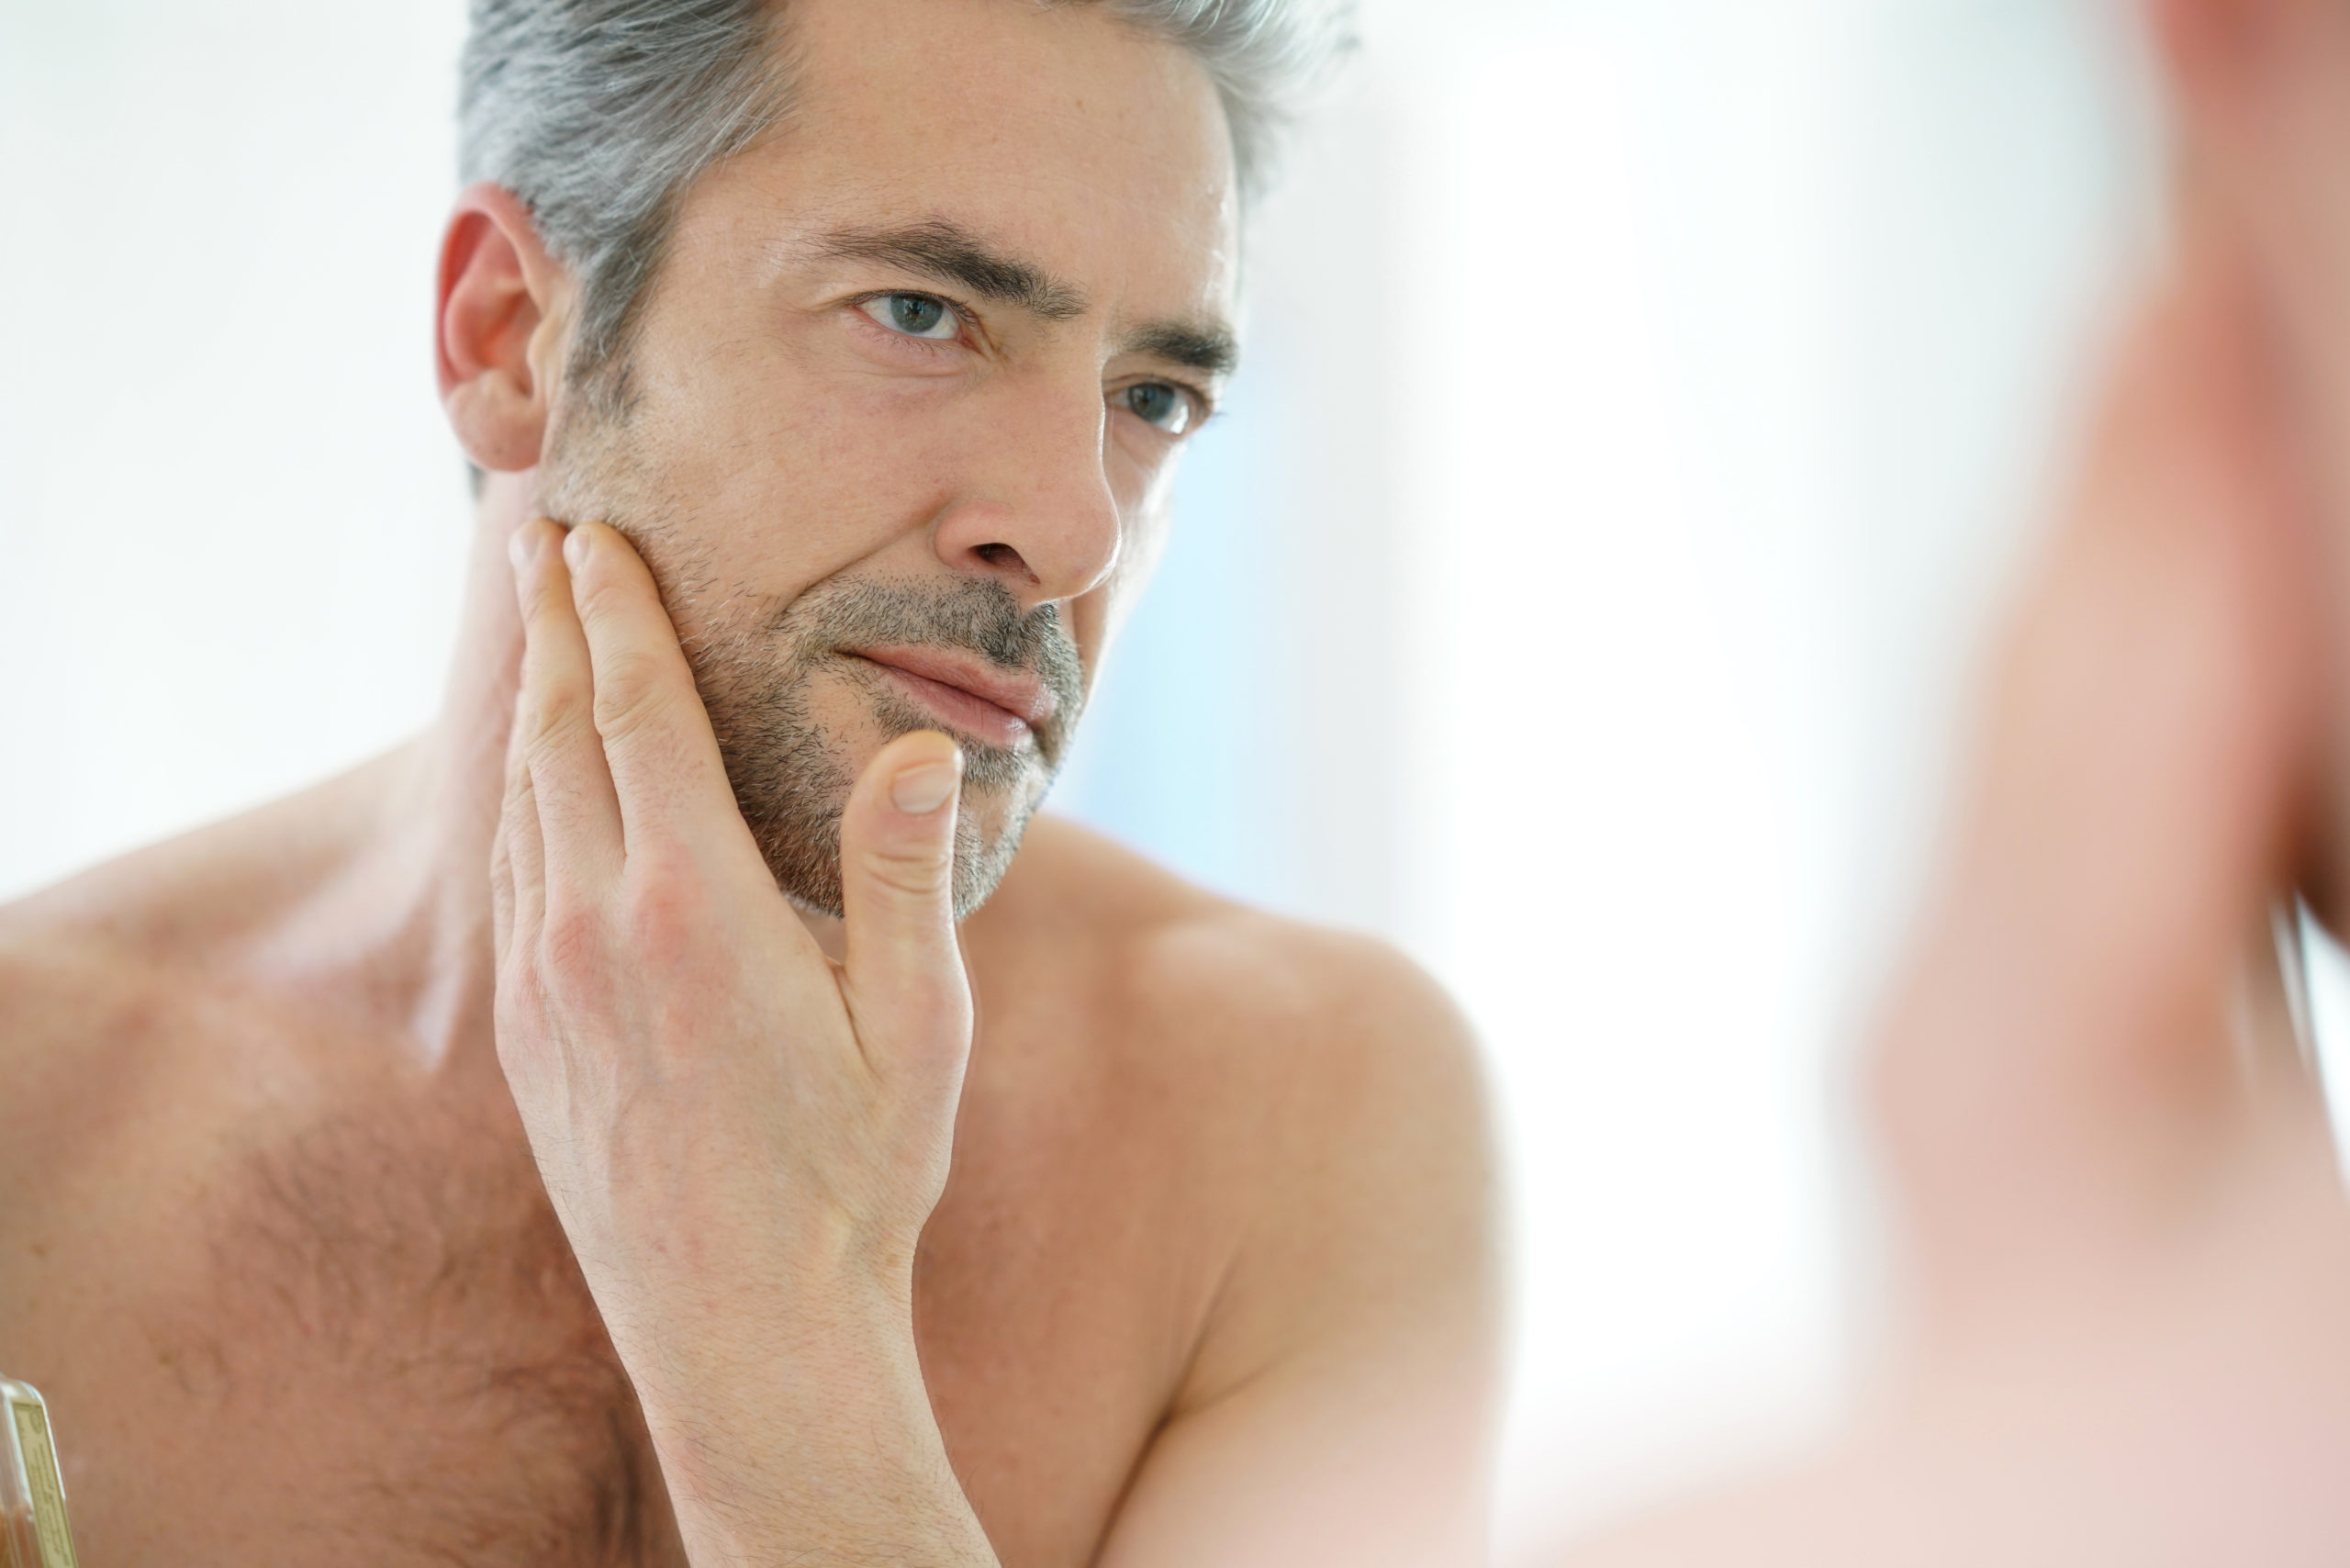 portrait-of-mature-man-in-front-of-mirror-applying-facial-cream